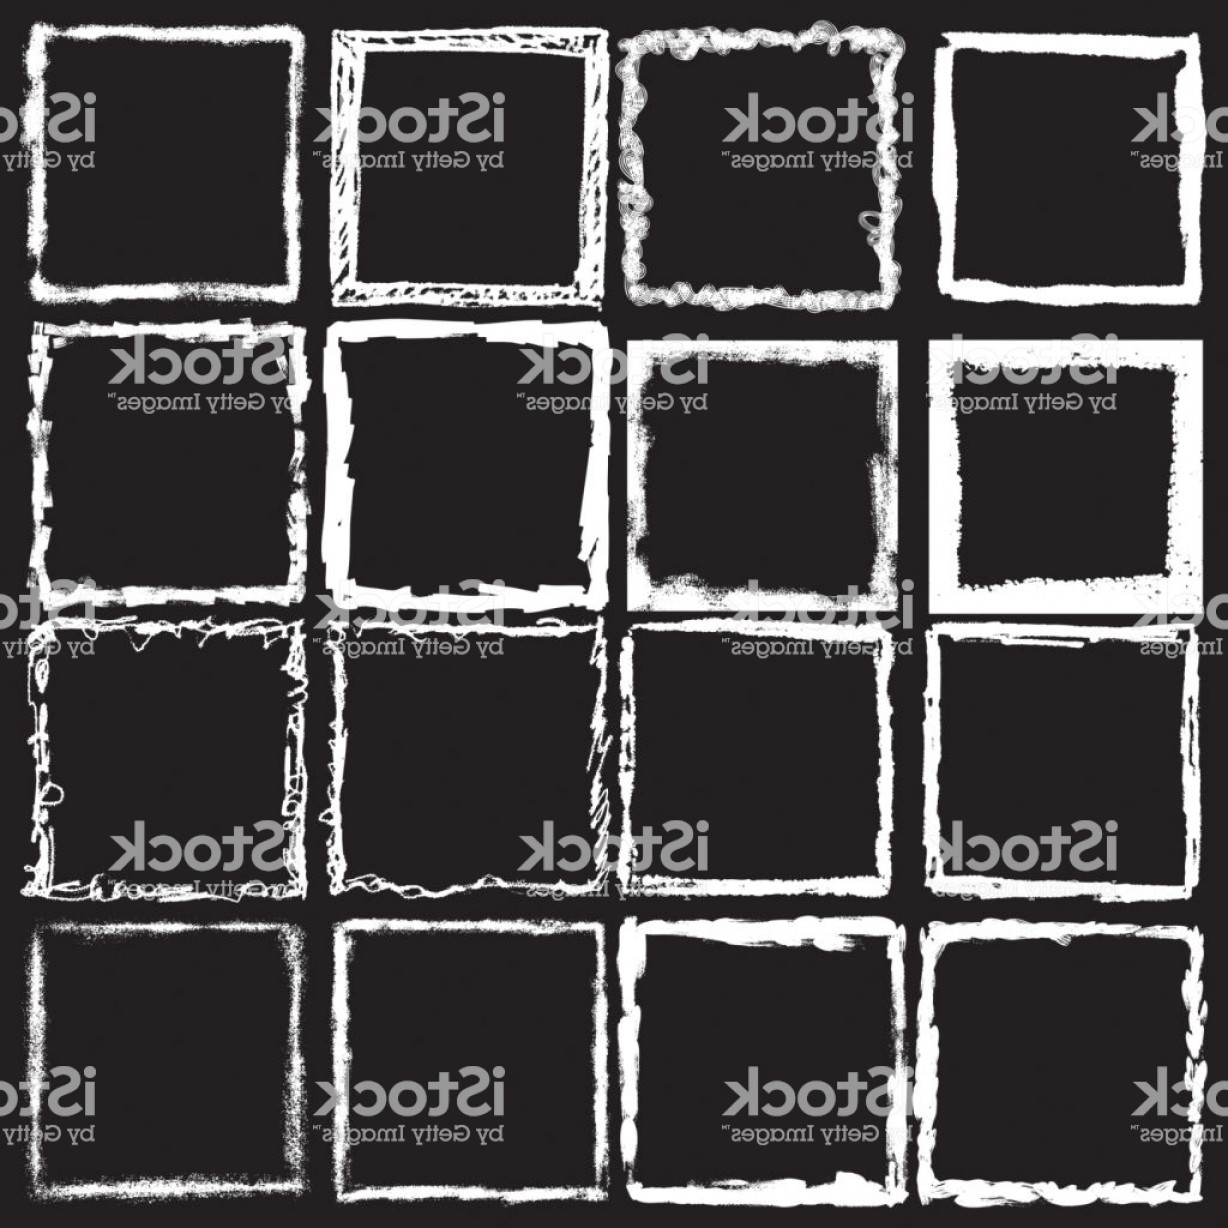 Square Black Vector Border Frame: Vector Vintage Grunge Black White And Color Distress Border Frame For Your Design Gm